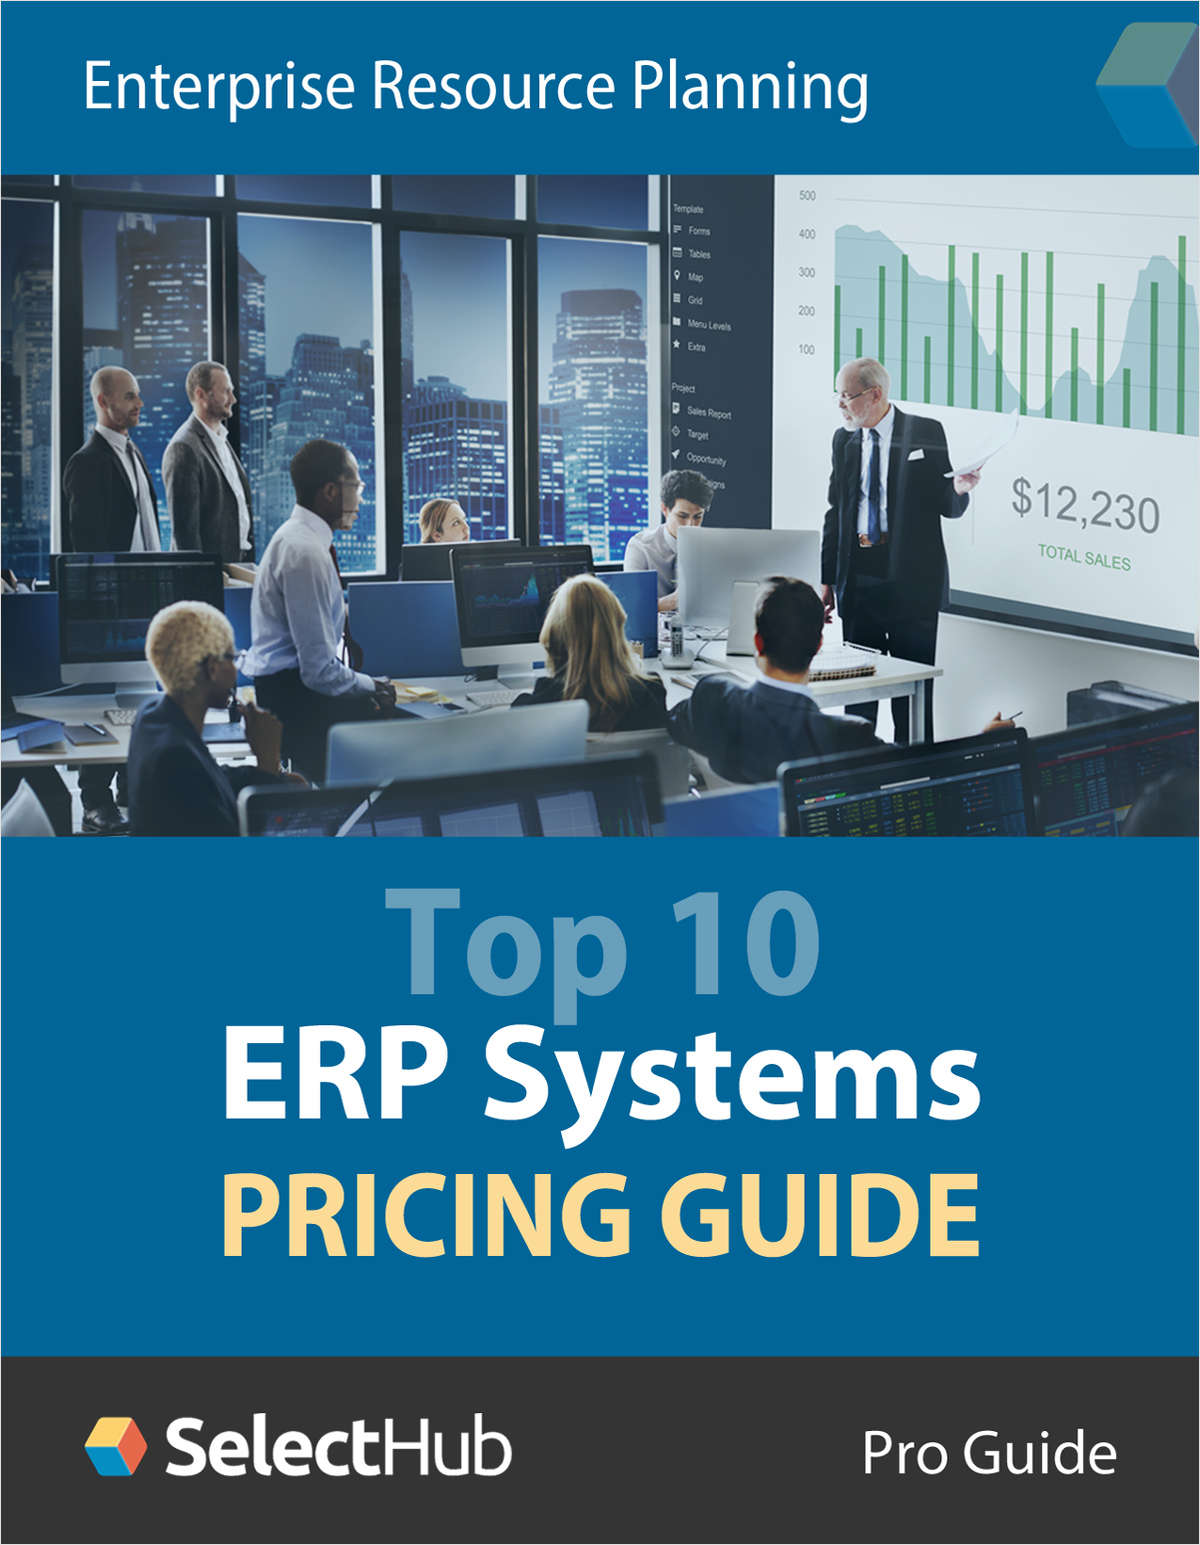 ERP Systems Software--Top 10 Pricing Guide 2021